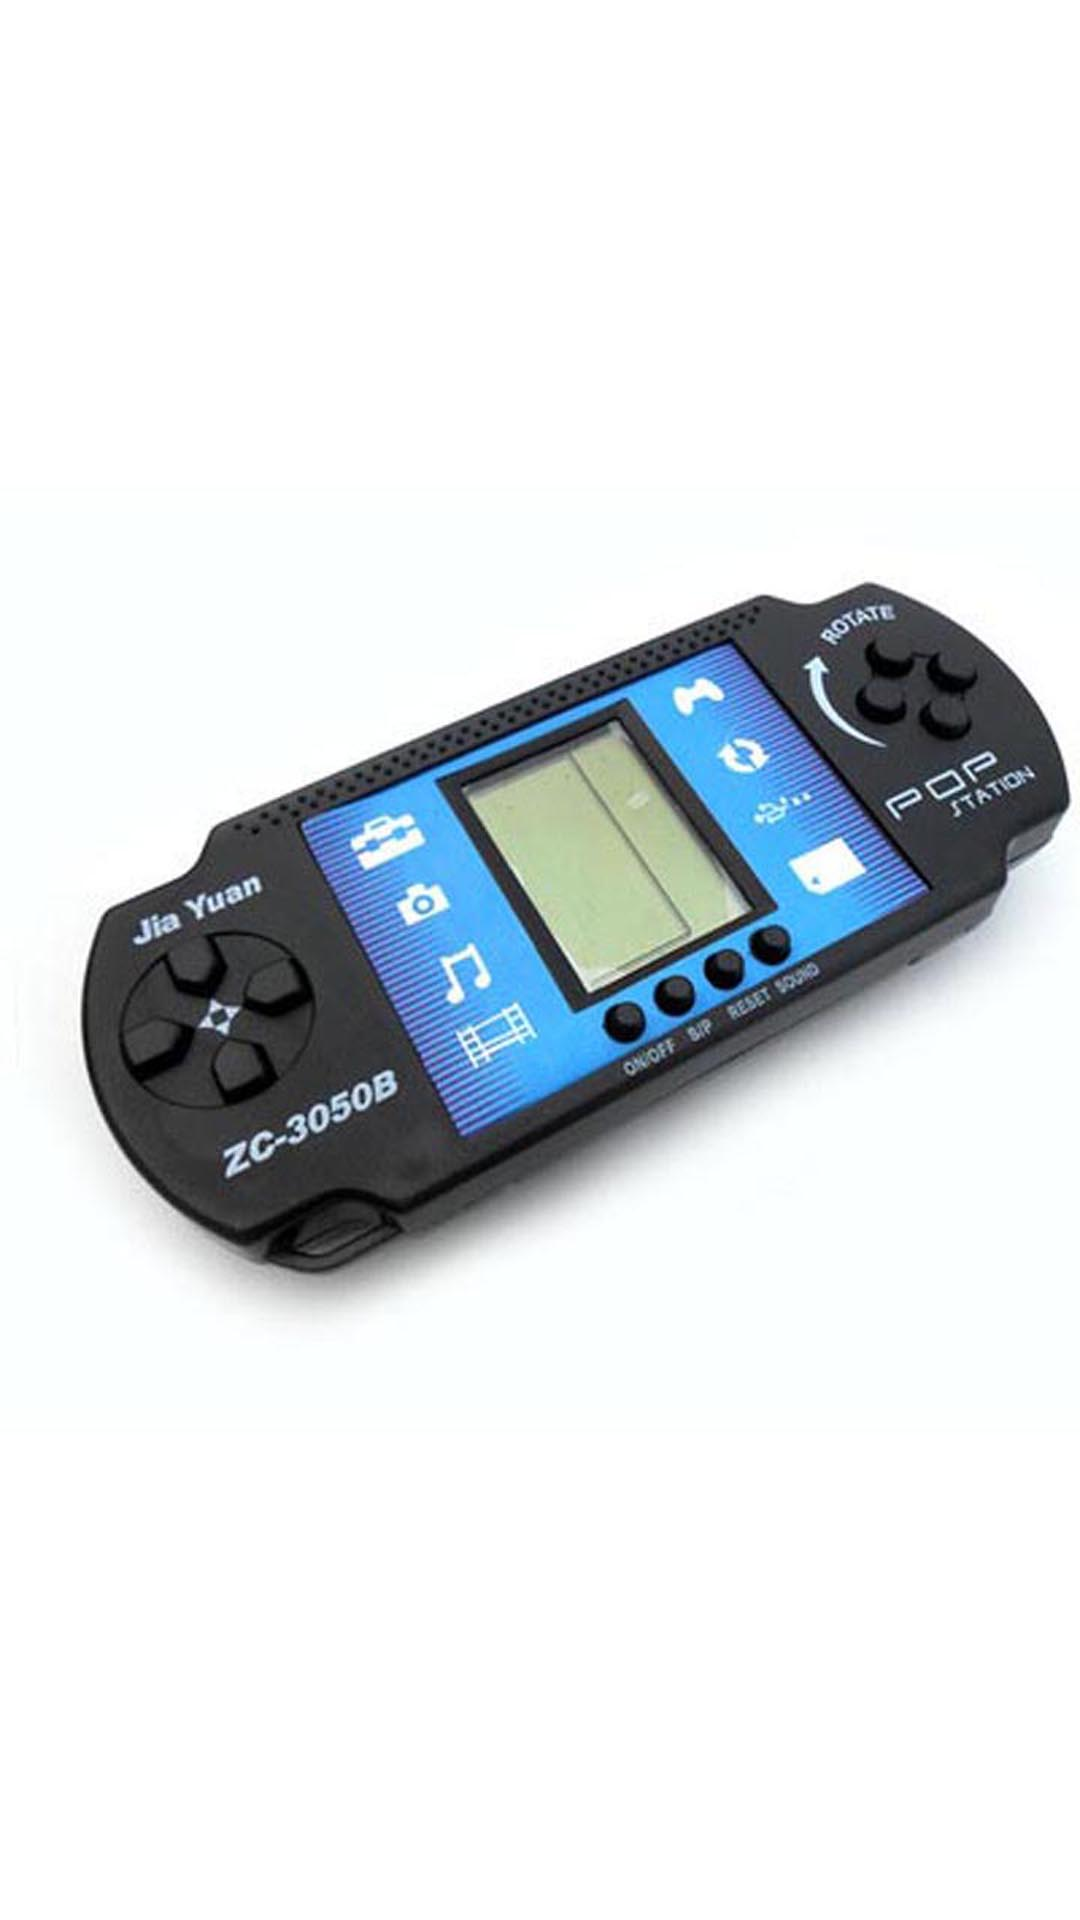 Smartkshop Pop Station Handheld Brick Game